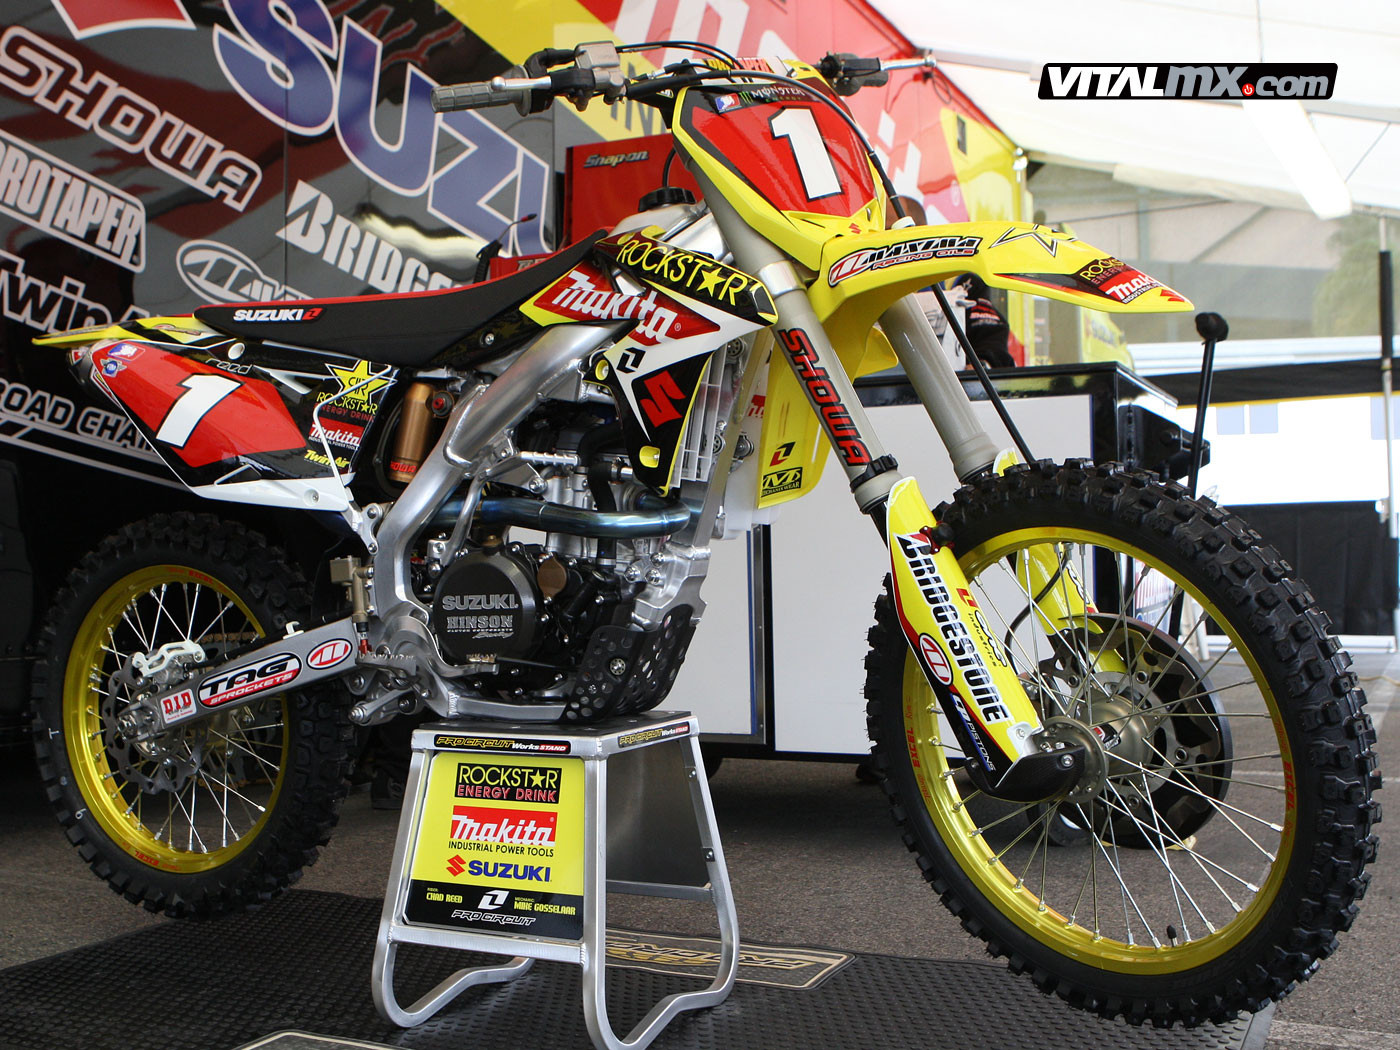 ryan dungey's rockstar makita suzuki - the big picture: bring on